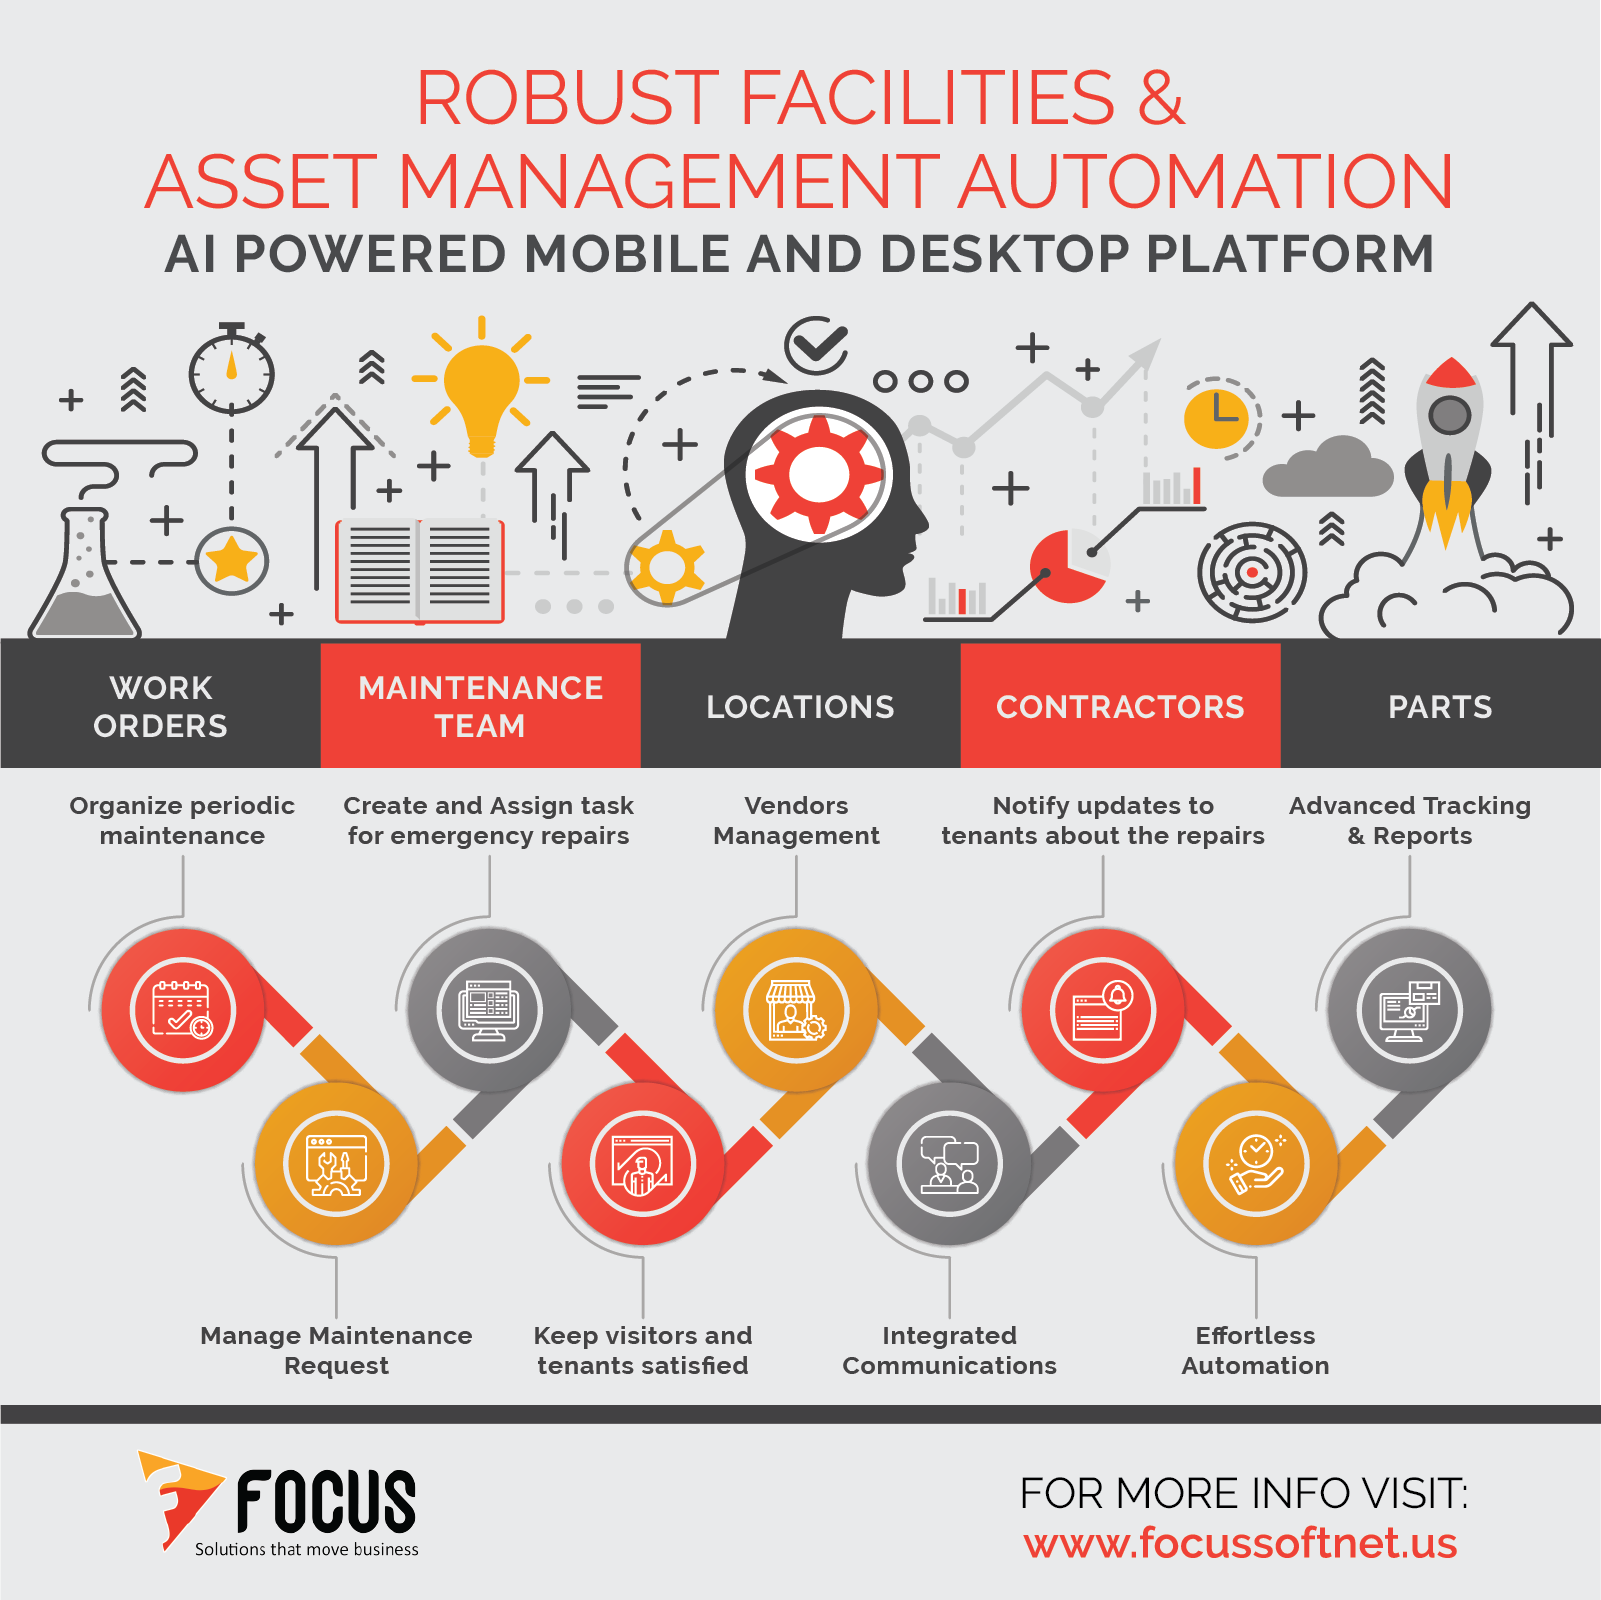 facilities management software in united states 2020